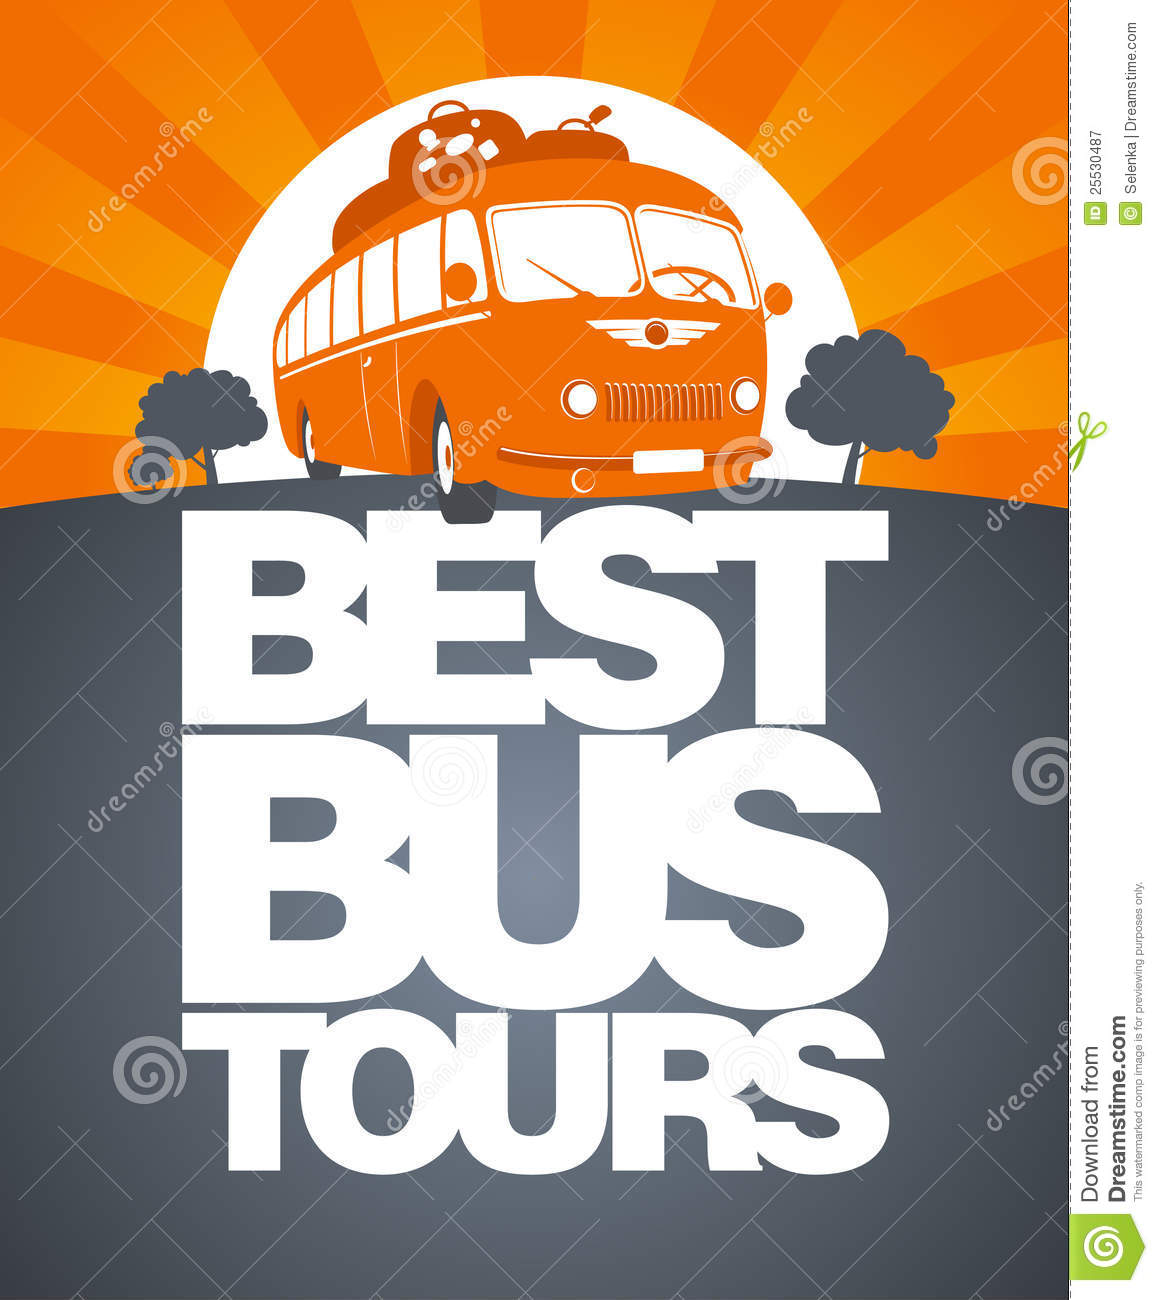 best bus tour design template royalty free stock